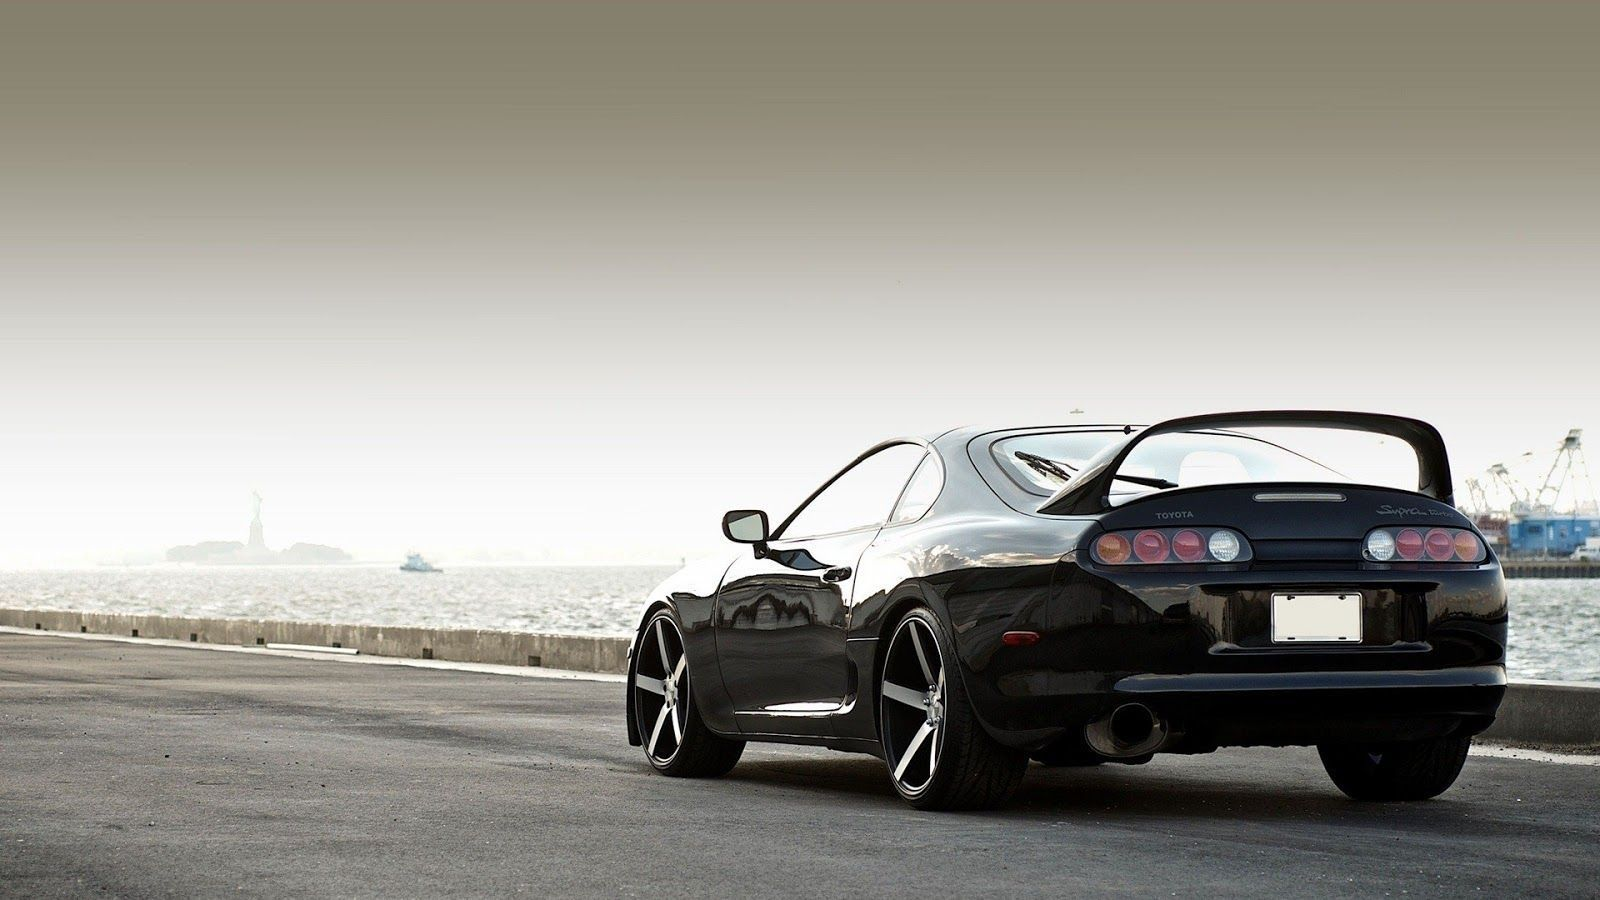 Simple Wallpaper High Quality Car - f02a41eaa195667728e568f52b3c6089  Perfect Image Reference_191888.jpg